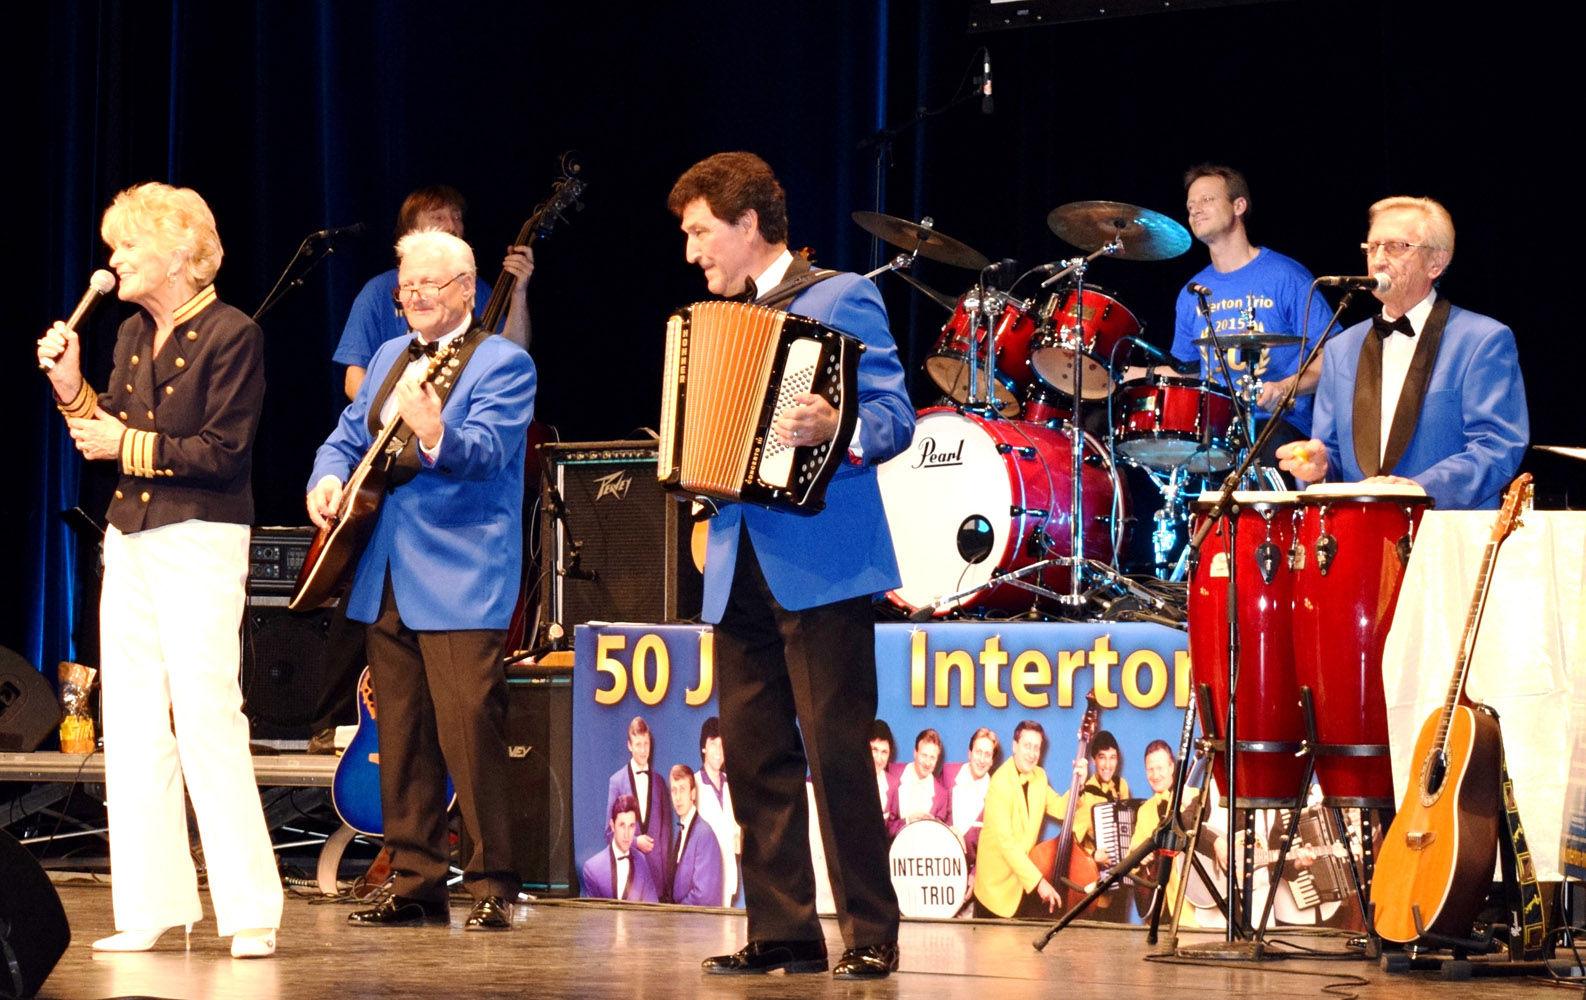 foto_pathe_2015_10_10_50-jahre-interton-trio_3.jpg